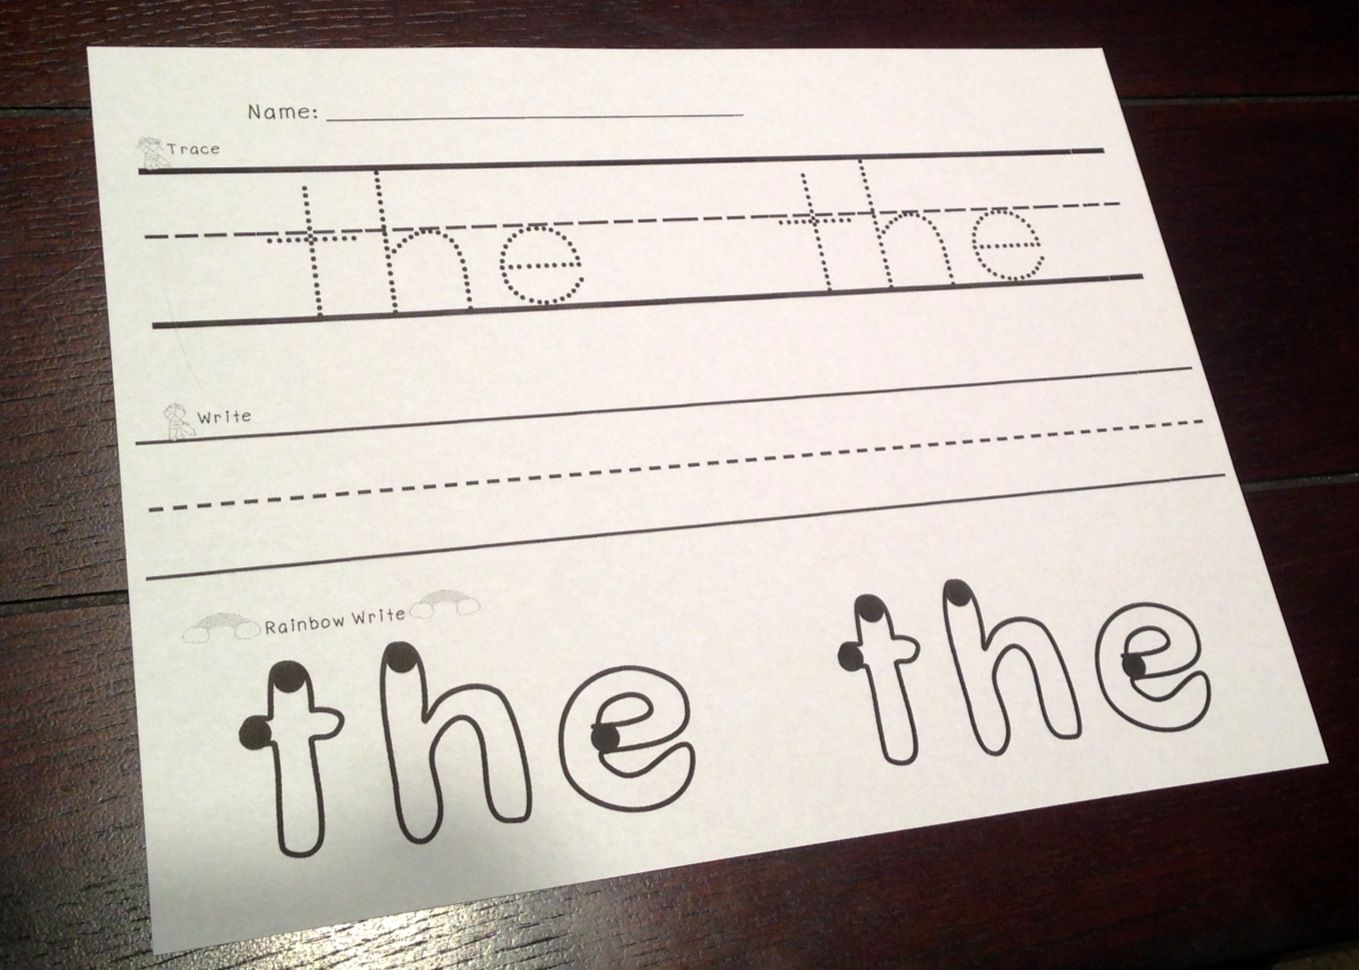 Sight Words Trace Write Rainbow Write With Images